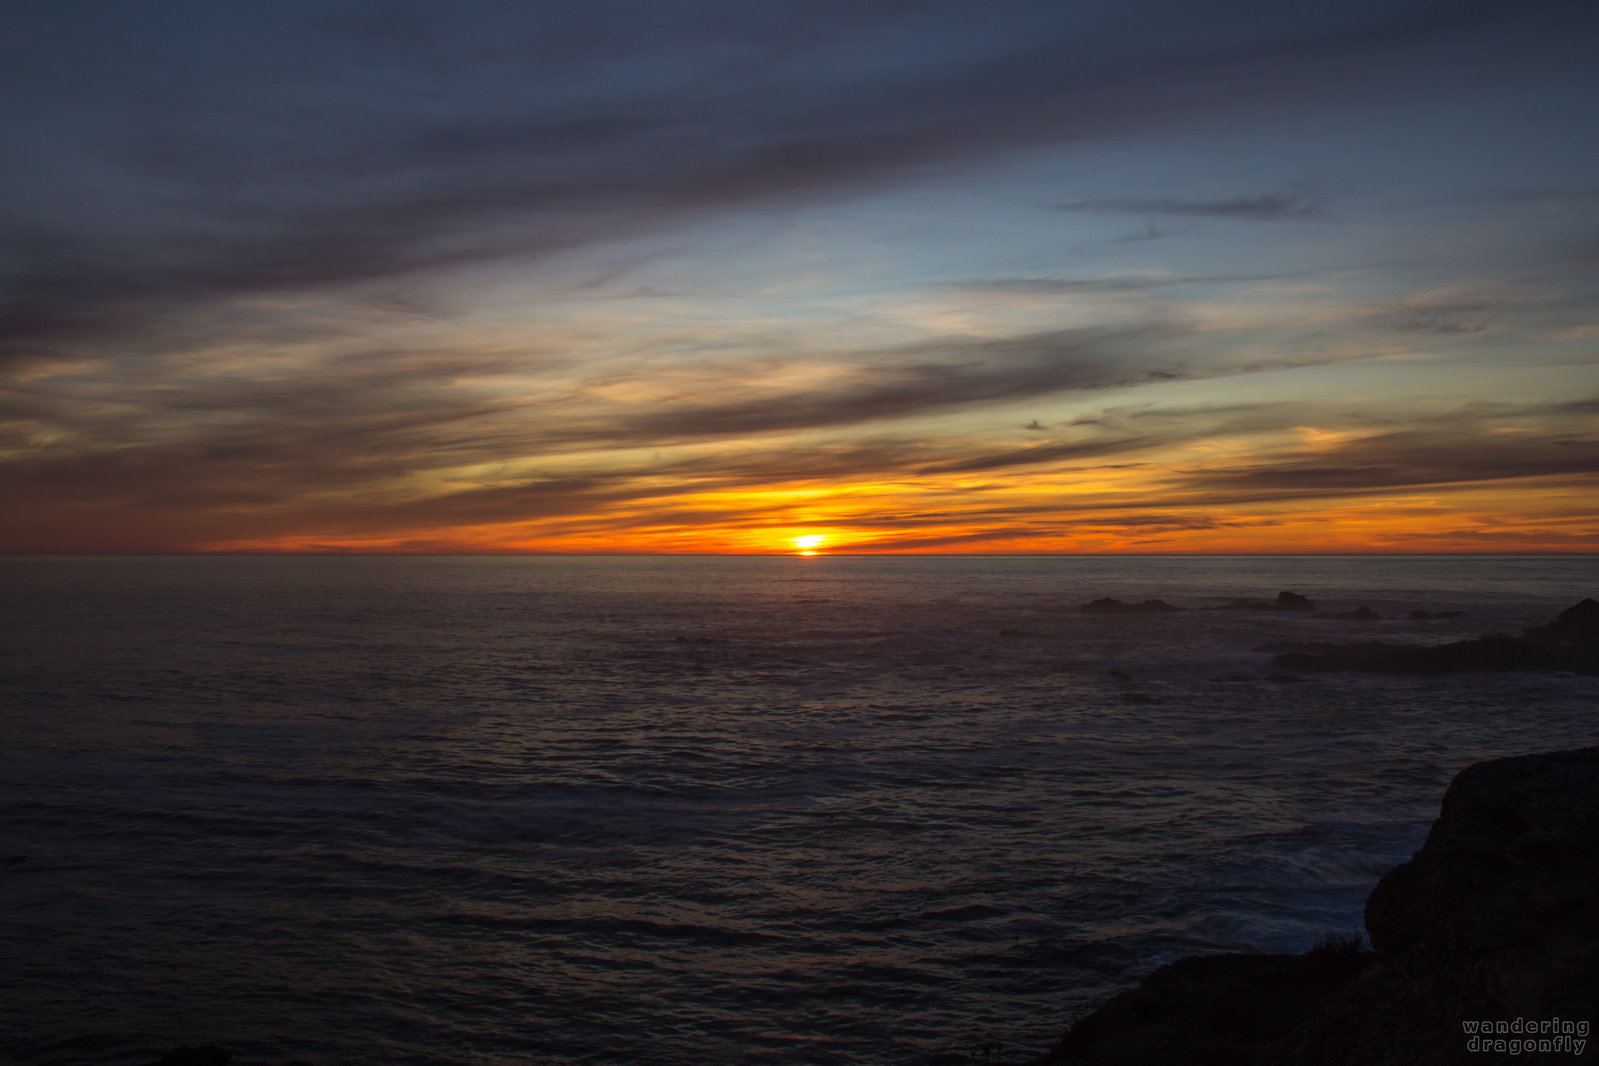 Last wink of the sun -- cloud, ocean, rock, sun, sunset, water, wave